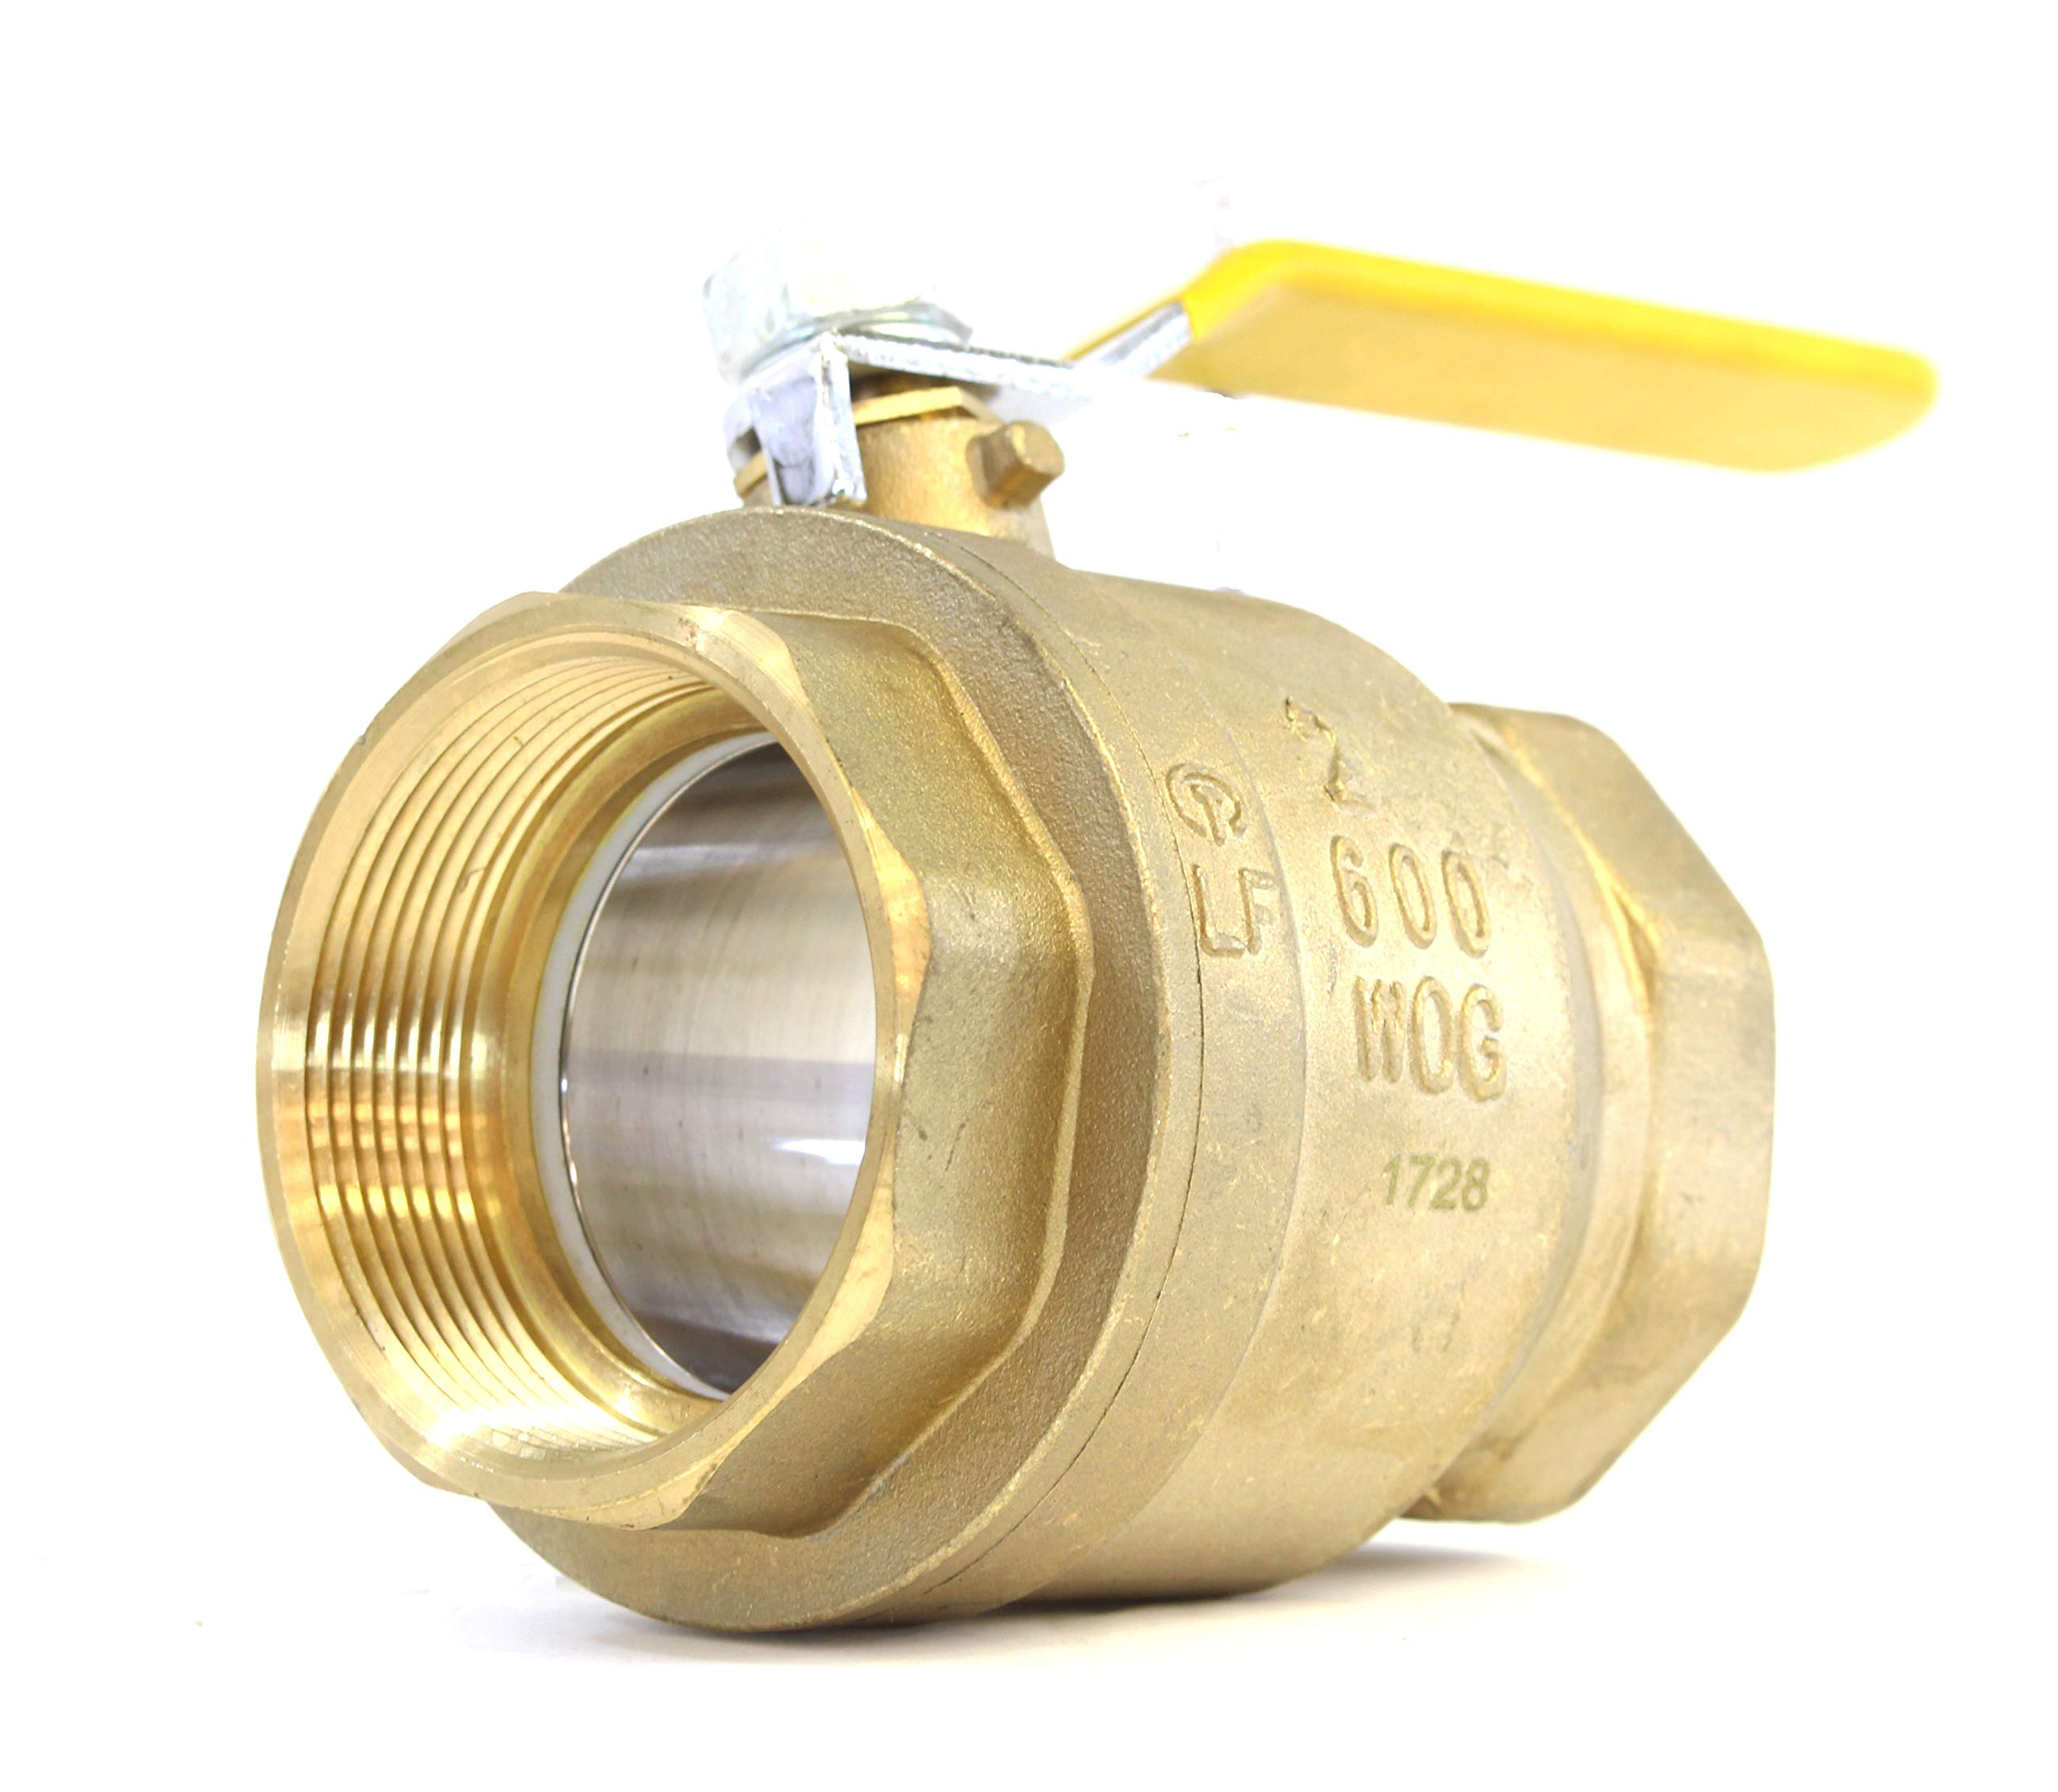 """2"""" Brass Ball Valve Threaded - IPS Full Port Irrigation Water Valves - Mechanical Lead Free Vinyl Lever Handle 2-Inch Female Thread Inline Steam Oil 600 WOG Supplies Hot Cold Pipes CSA"""